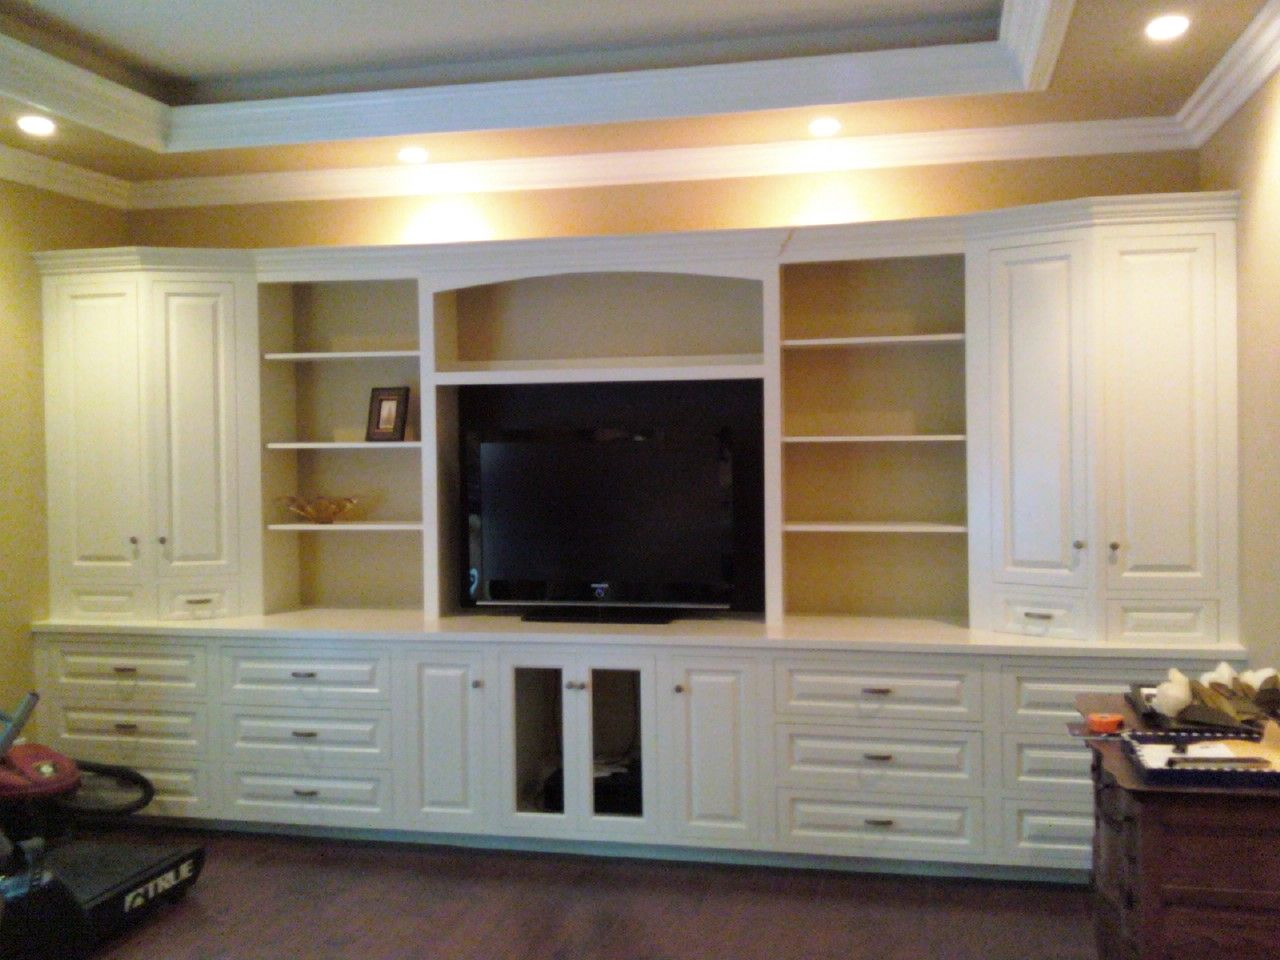 Living room wall units with storage wall units design for Built in wall units